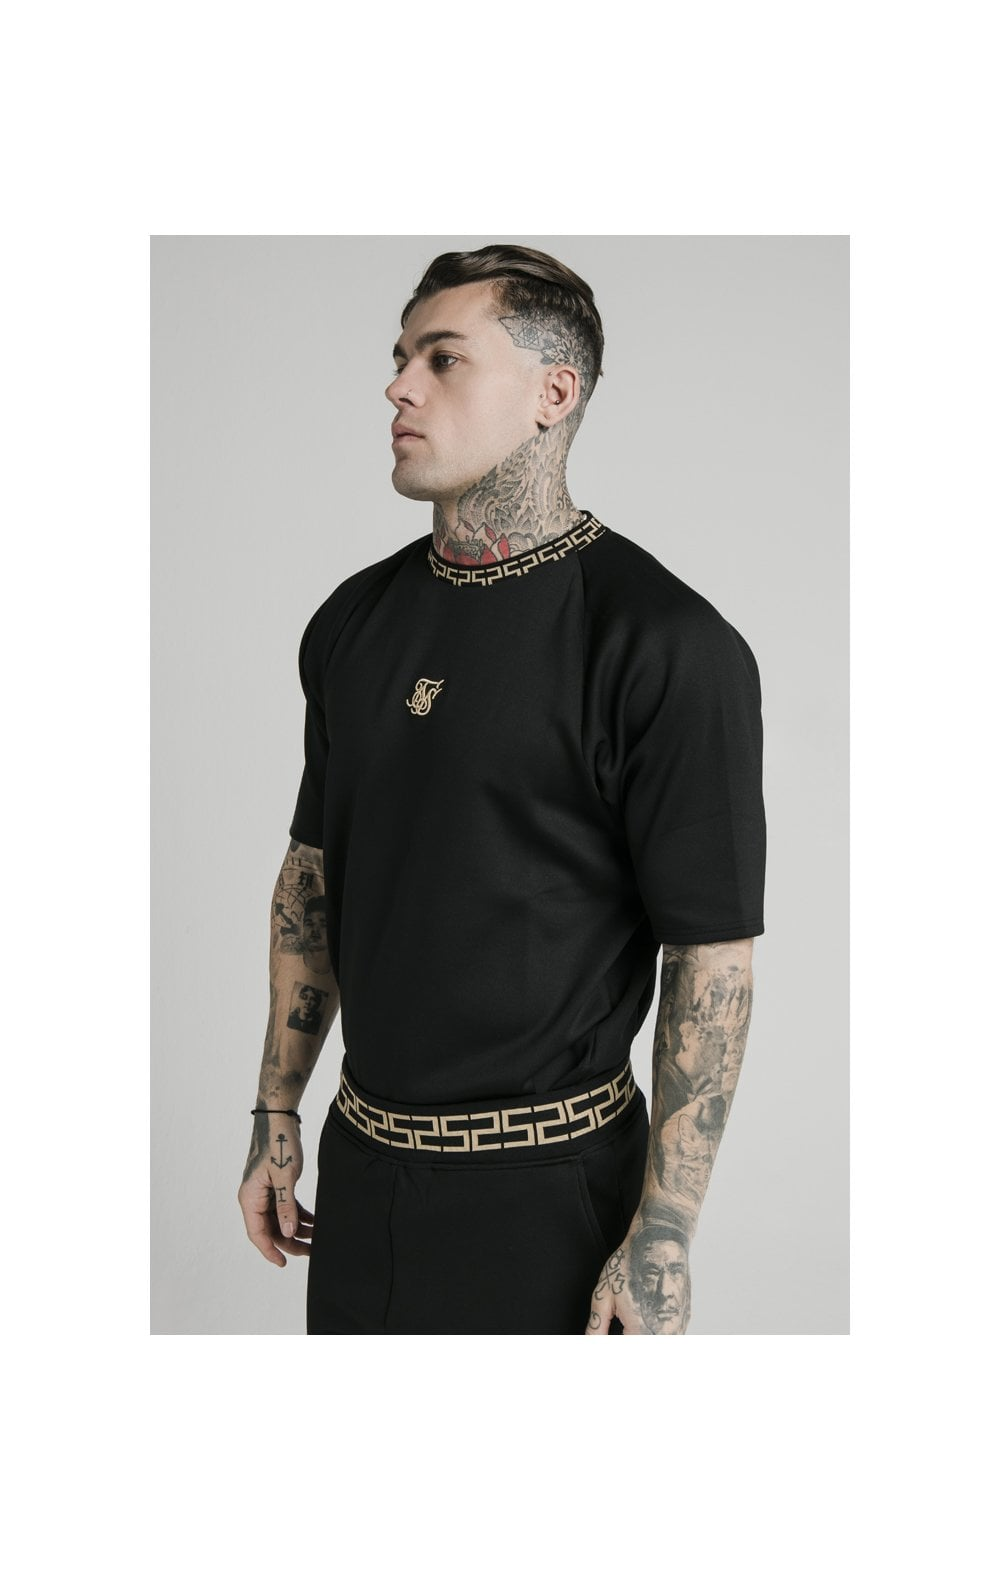 SikSilk S/S Chain Rib Raglan Sweater - Black